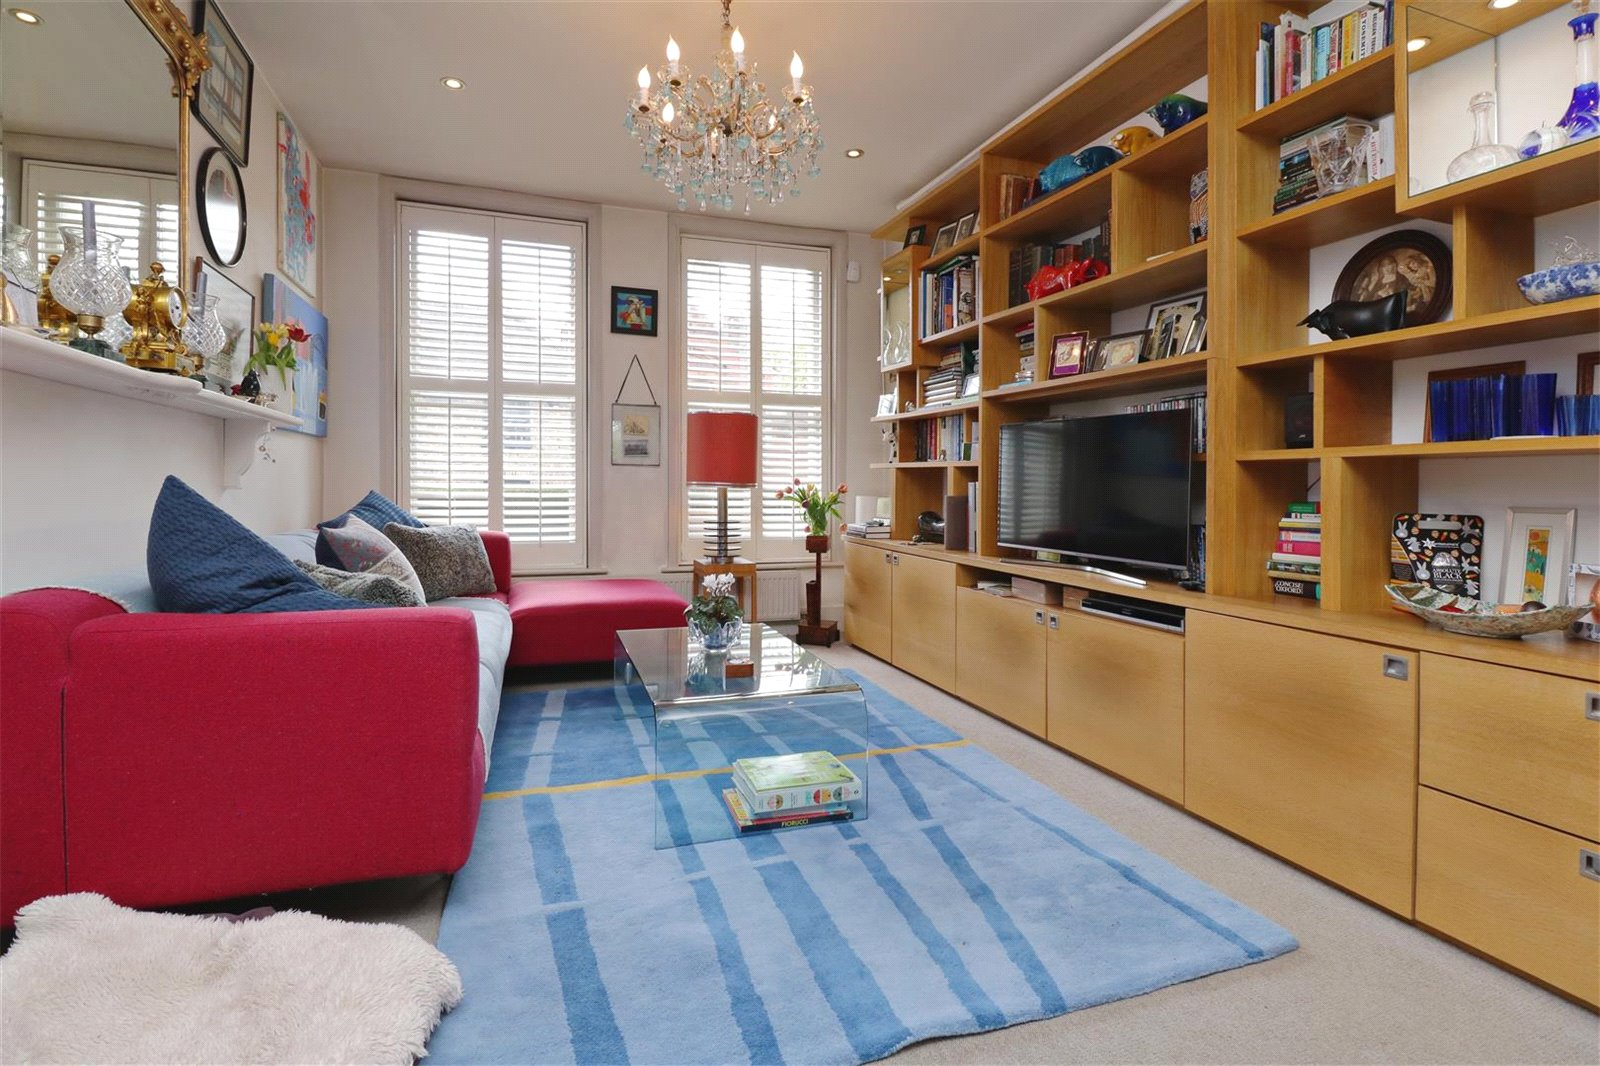 House for sale in Highgate, N6 5HX 7